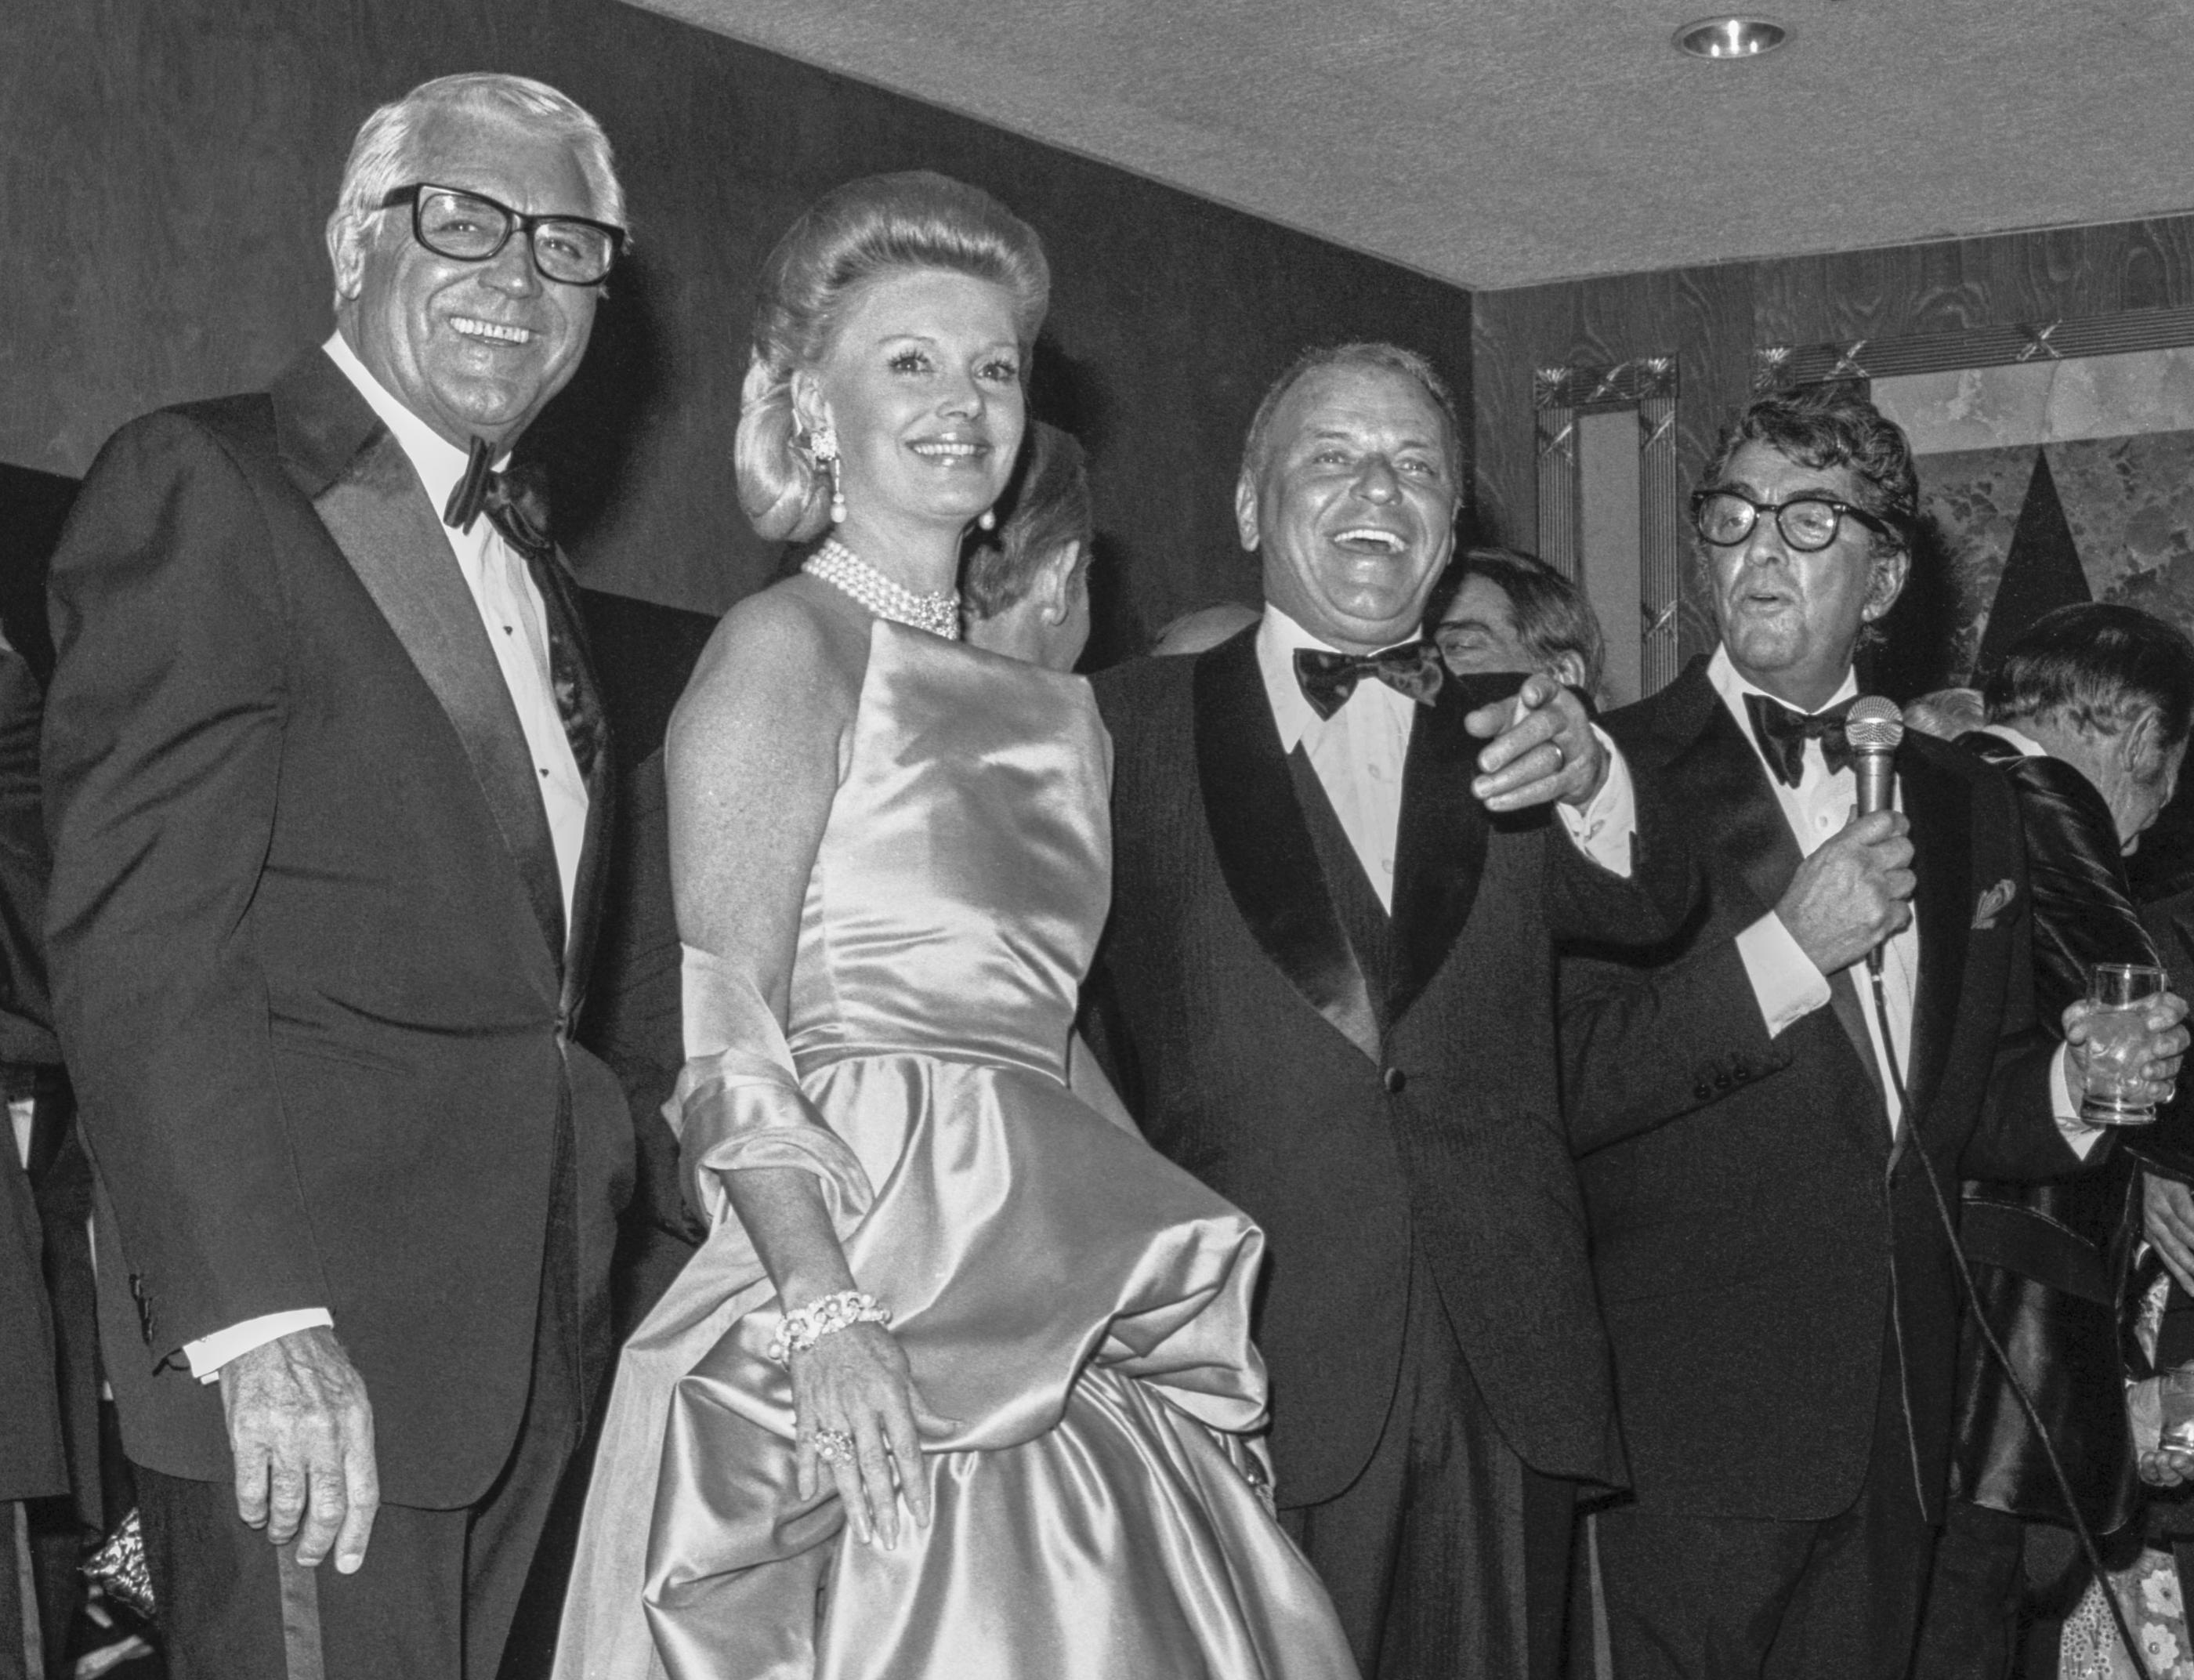 Actor Cary Grant, from left, Barbara Sinatra, Frank Sinatra and Dean Martin pose during Frank Sinatra's 40th Anniversary party at the Paramount Theater at Caesars Palace in Las Vegas on December 12, 1979. CREDIT: Cliff Stanley-Gary Angel/Las Vegas News Bureau